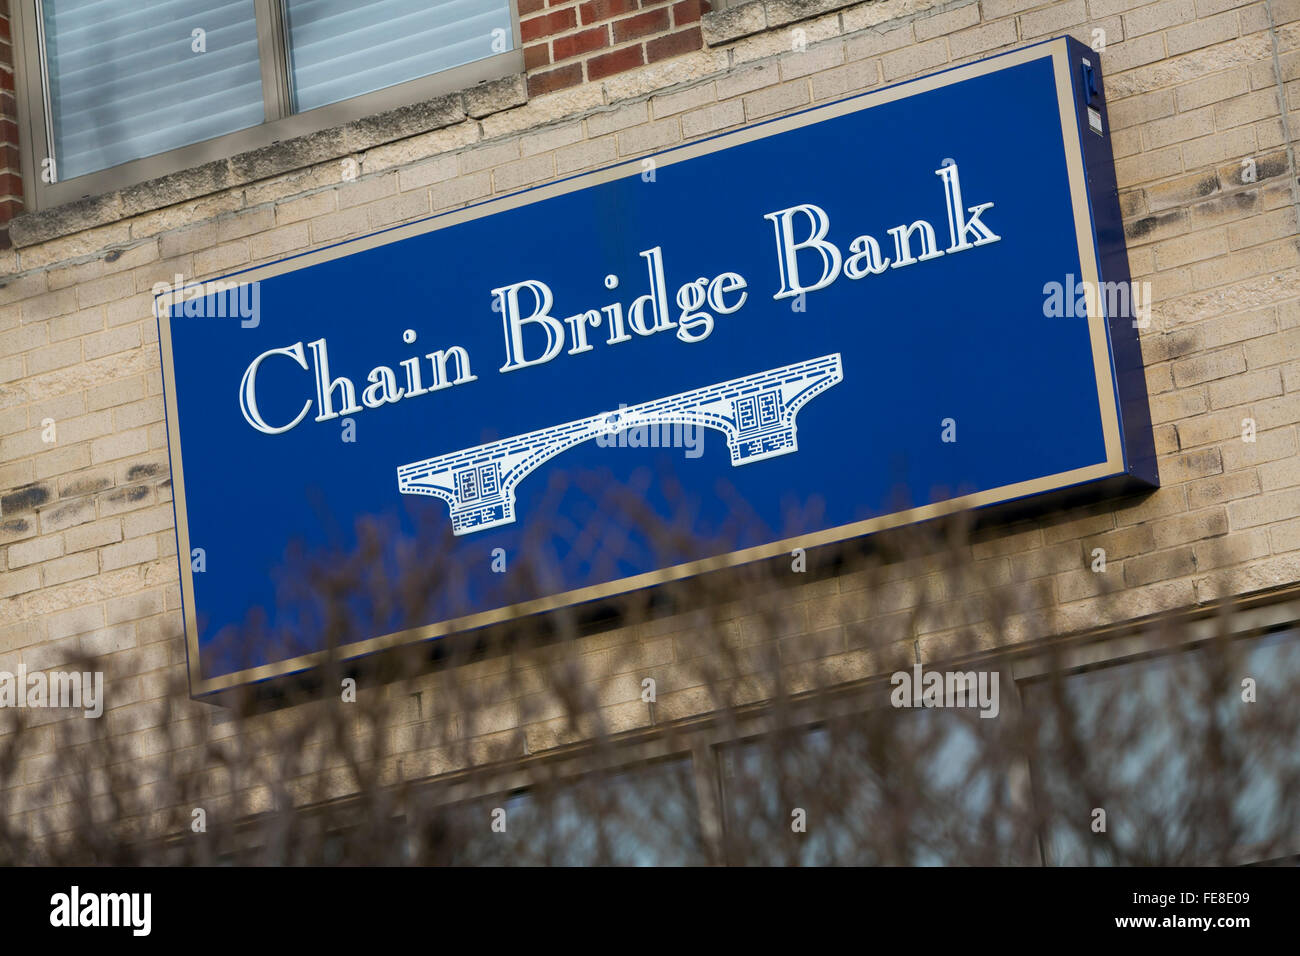 A logo sign outside of the Chain Bridge Bank in McLean, Virginia on January 1, 2016. The bank has only a single - Stock Image